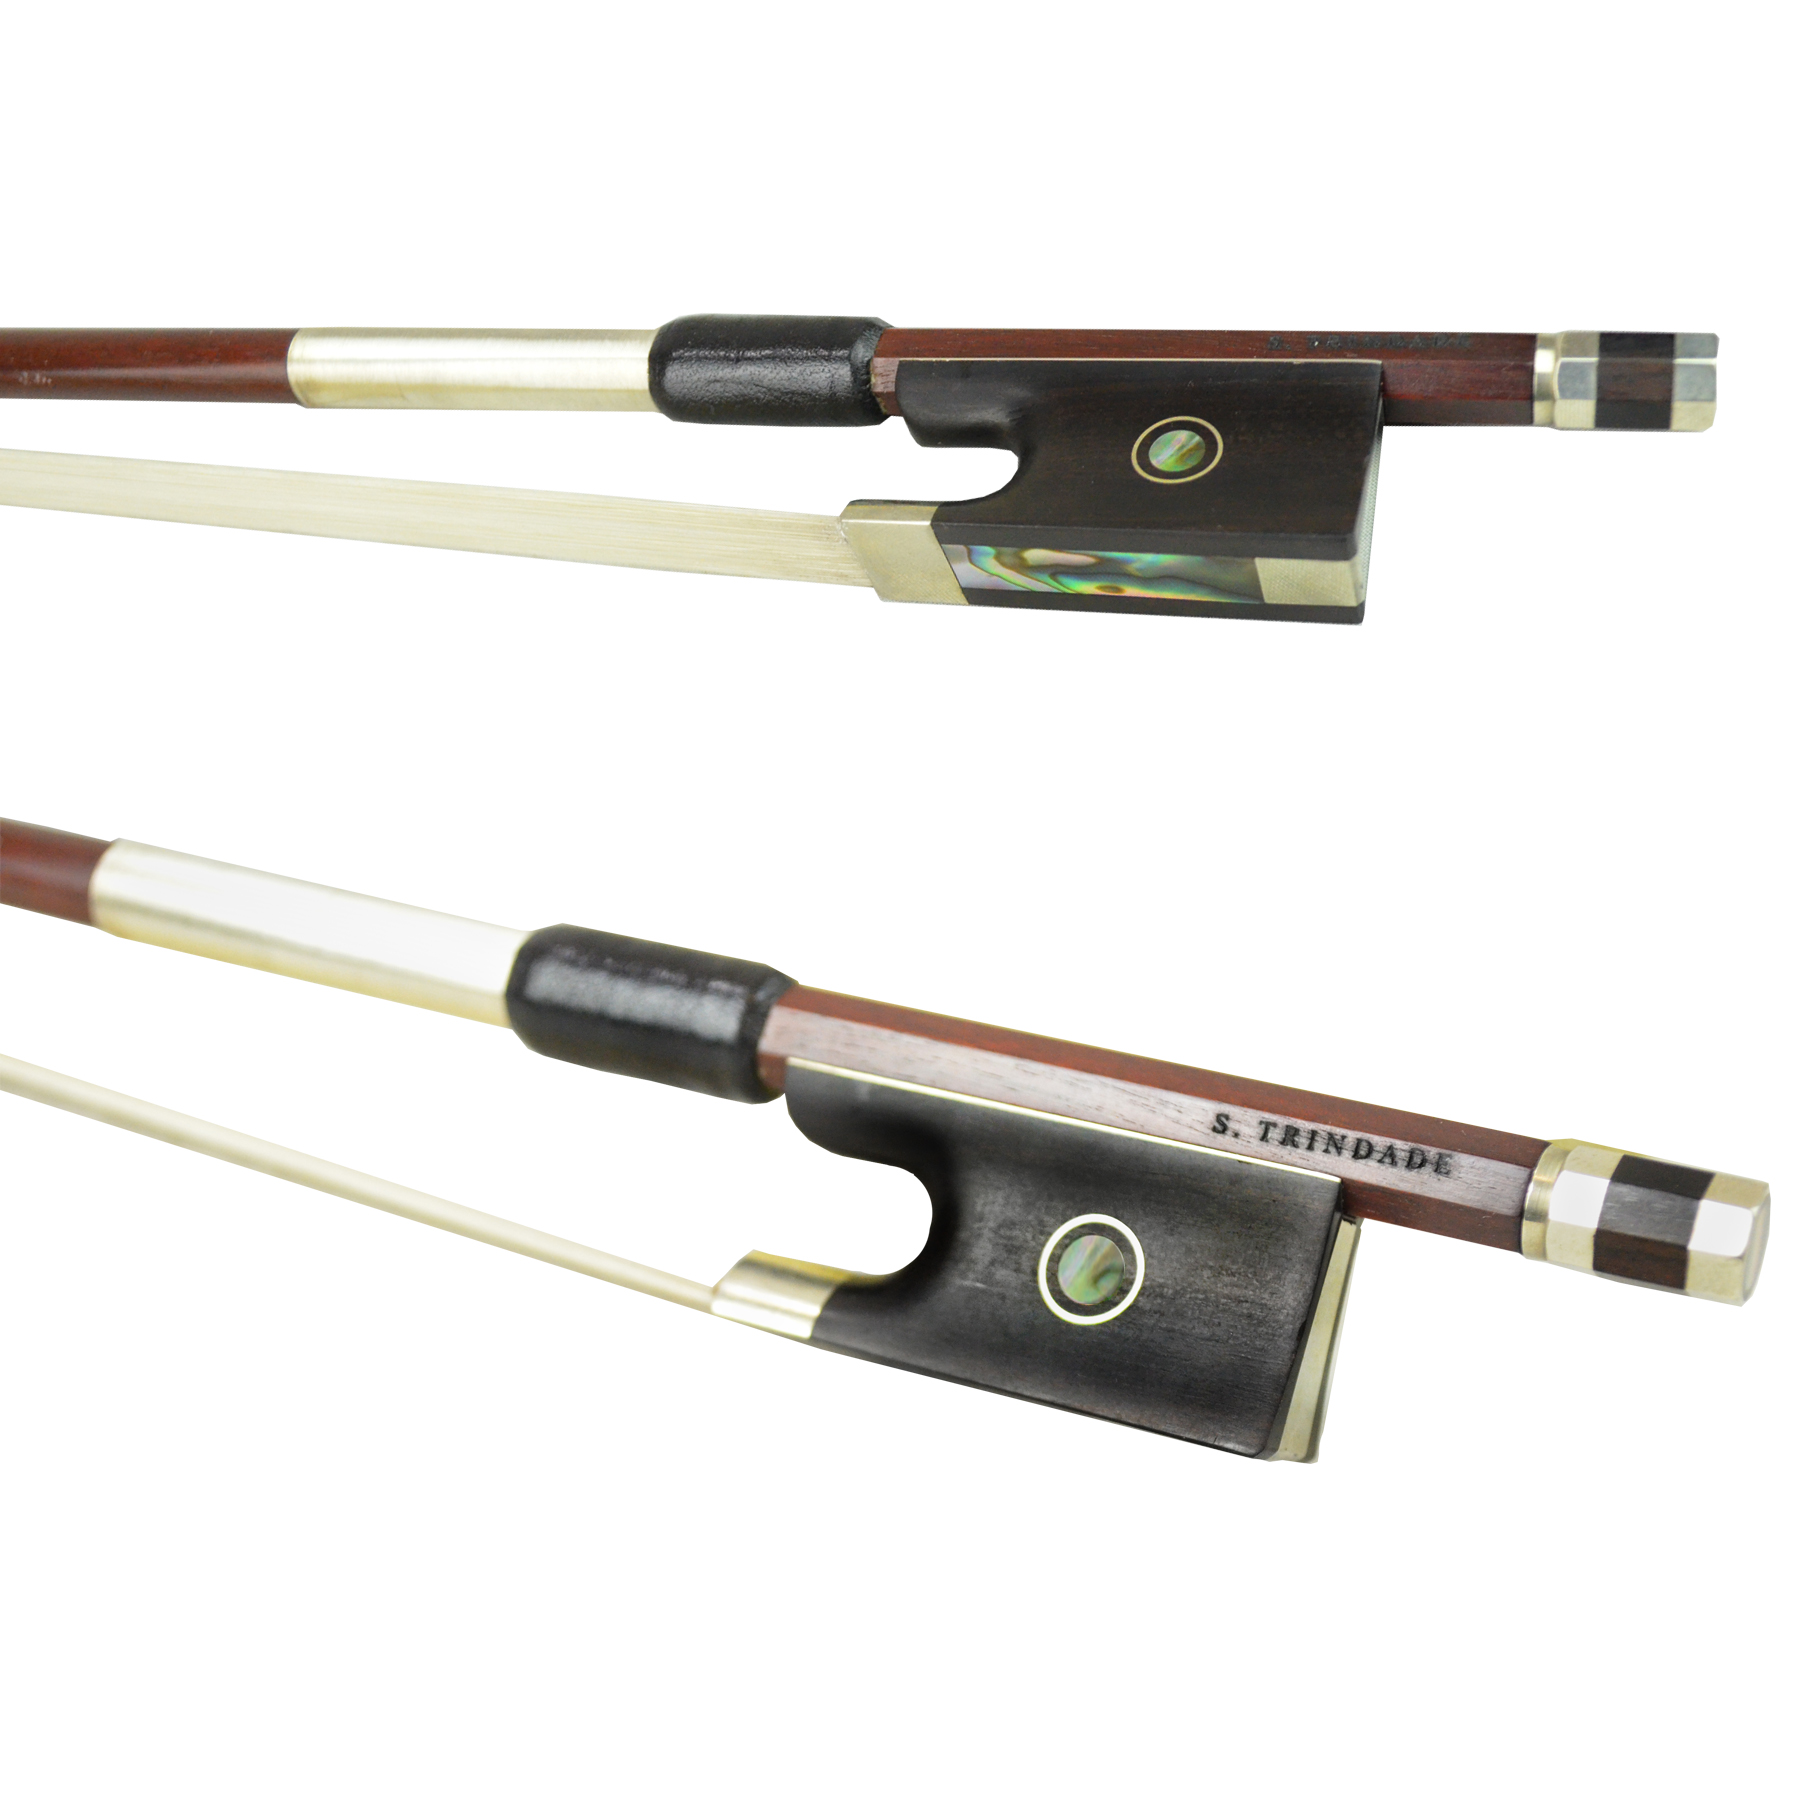 L'archet Brasil Nickel Mounted Violin Bow by S. Trindade in action